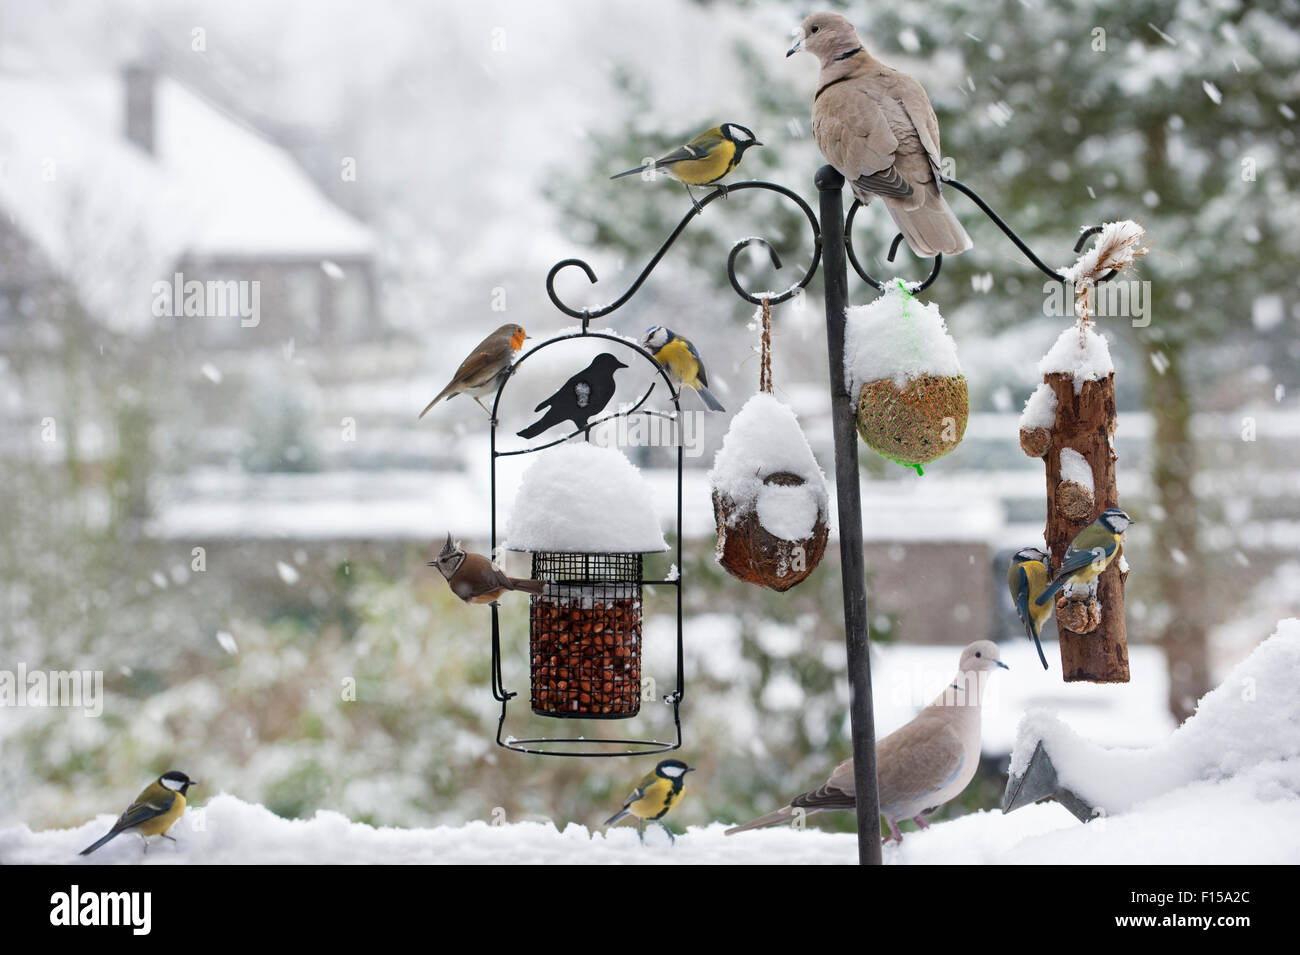 Songbirds feeding on nuts, seed and fat from garden bird feeder in the snow in winter in town Stock Photo